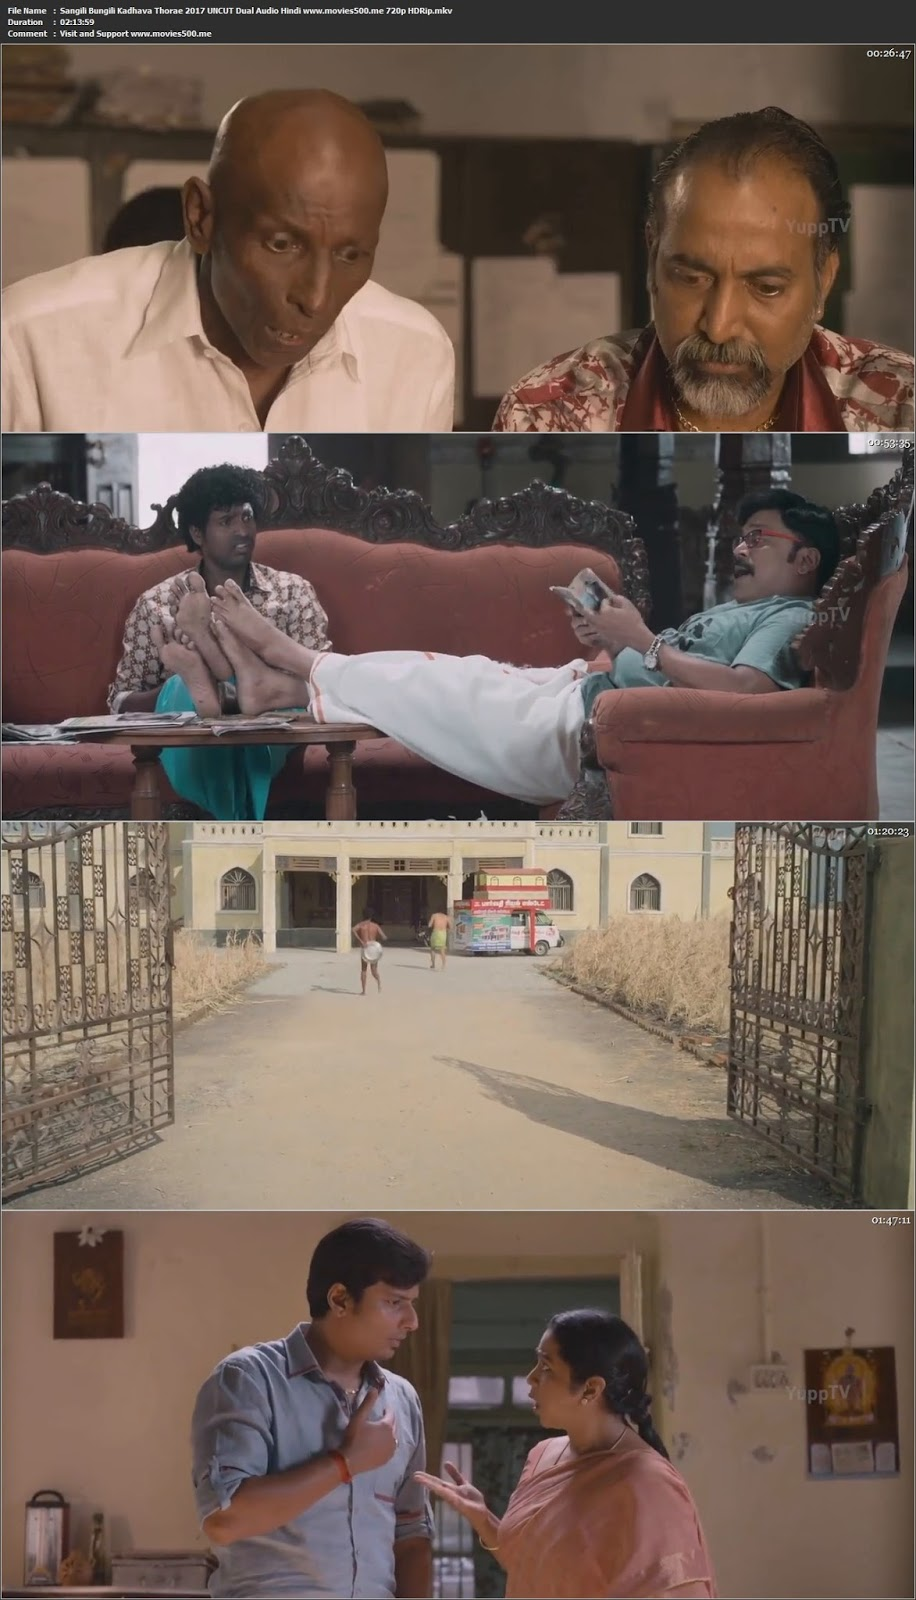 Sangili Bungili Kadhava Thorae 2017 UNCUT Dual Audio Hindi HDRip 720p at softwaresonly.com